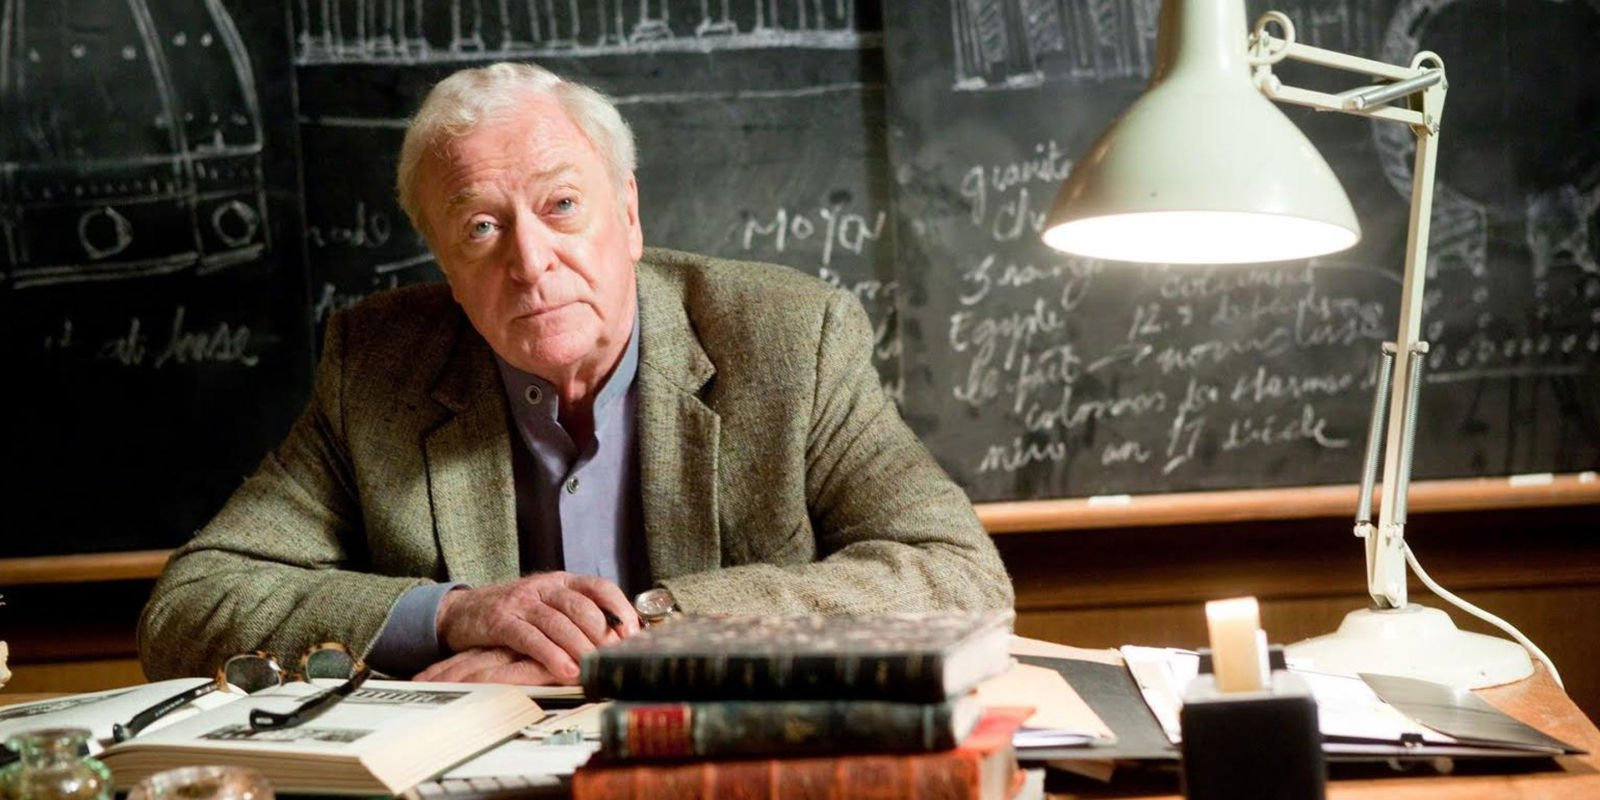 Sir Michael Caine offers a definitive answer to Inception's mysterious ending